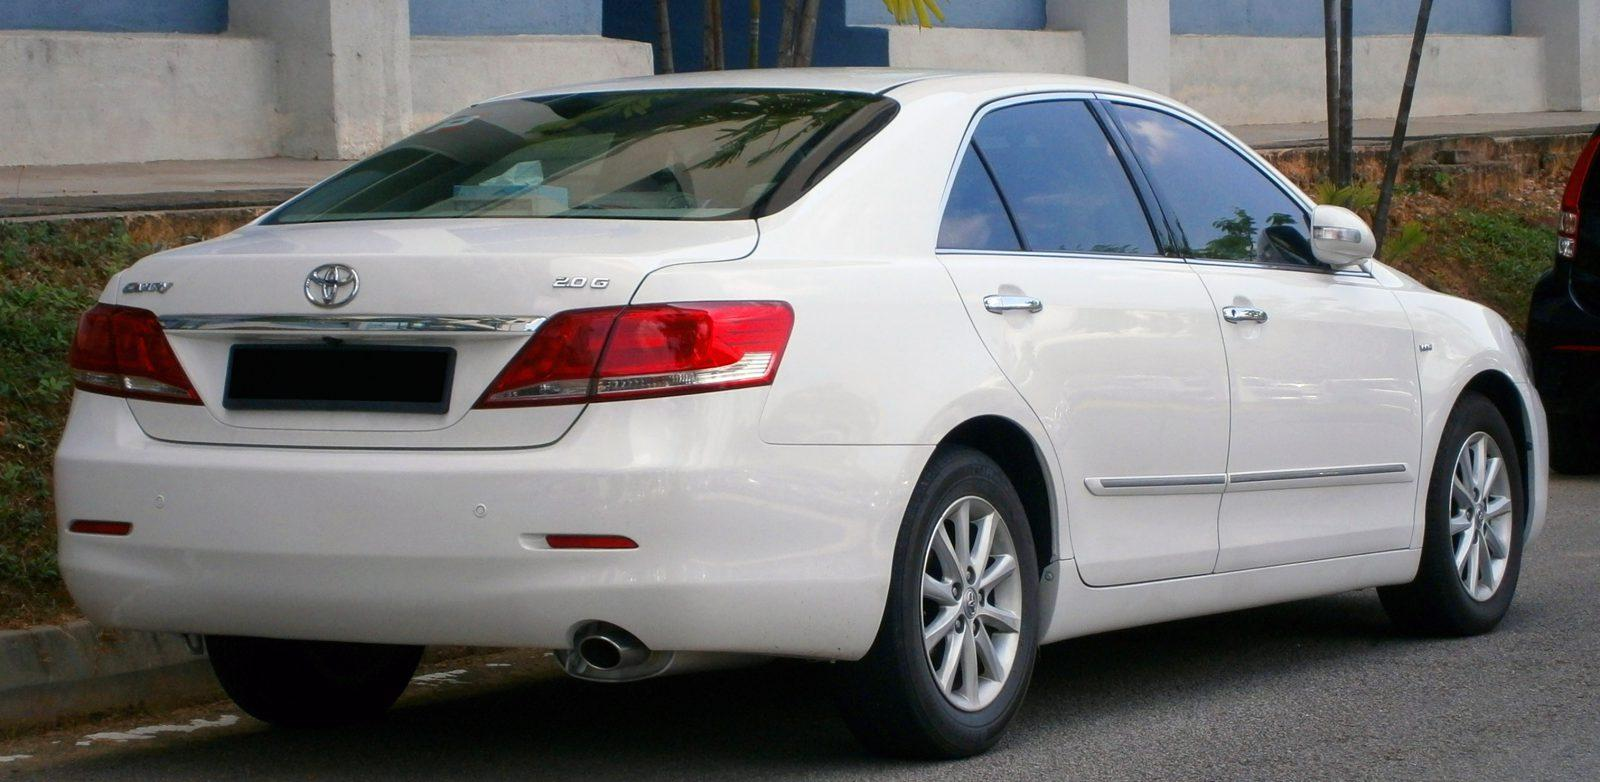 Deal-Breaker Or Not: 2009 Toyota Camry Problems - CAR FROM JAPAN